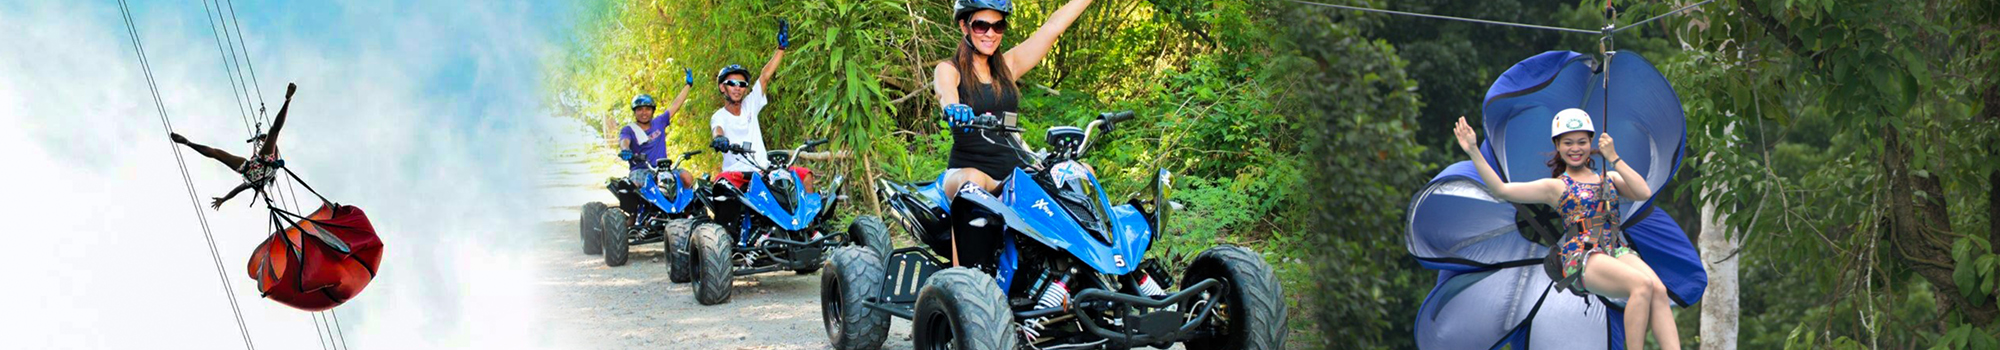 Join Atmosphere for a zipline or ATV adventure in Dumaguete Philippines